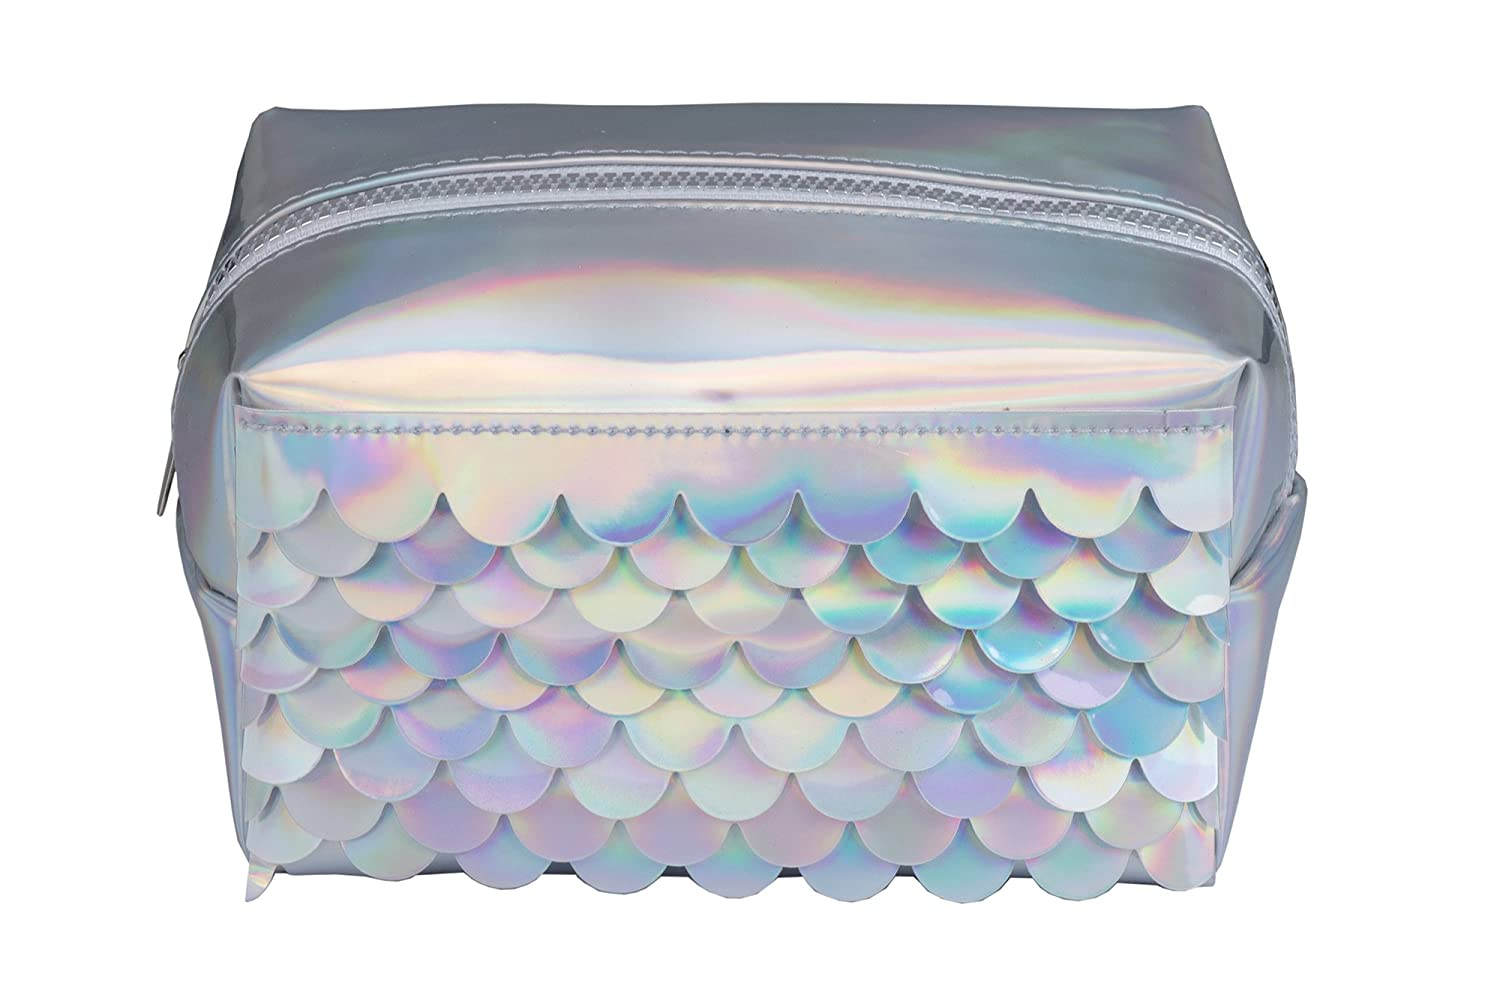 Tri-Coastal Design Mermaid Travel Accessory Makeup Cosmetic Bag: Holographic Summer Mermaid with Scales